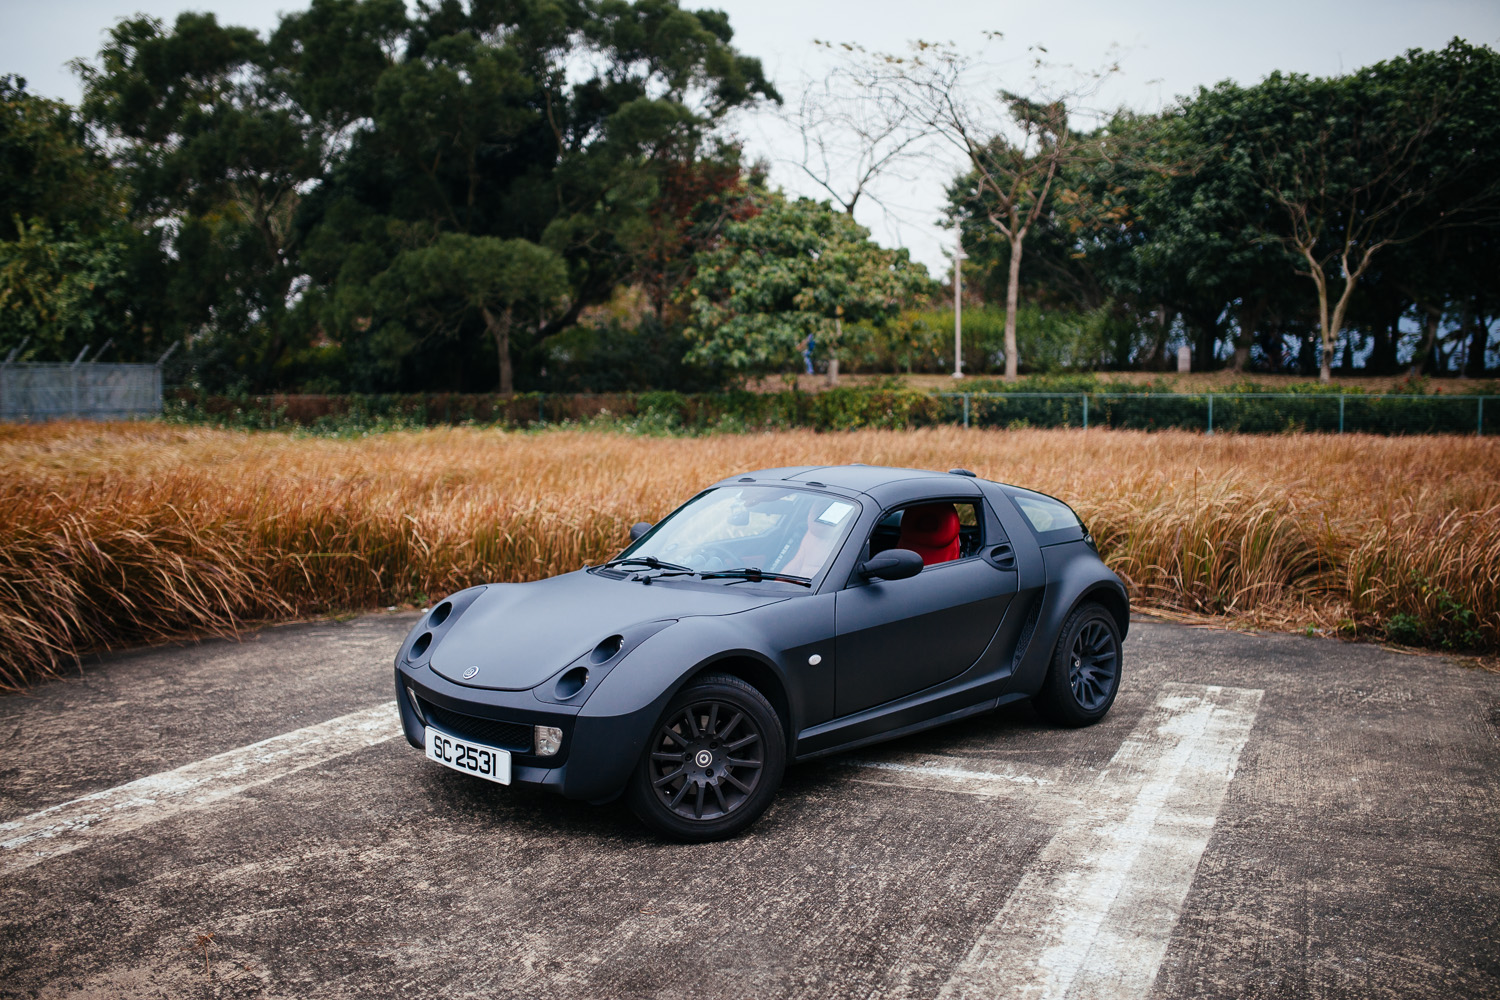 I do think the red interior complements the matte black very well.